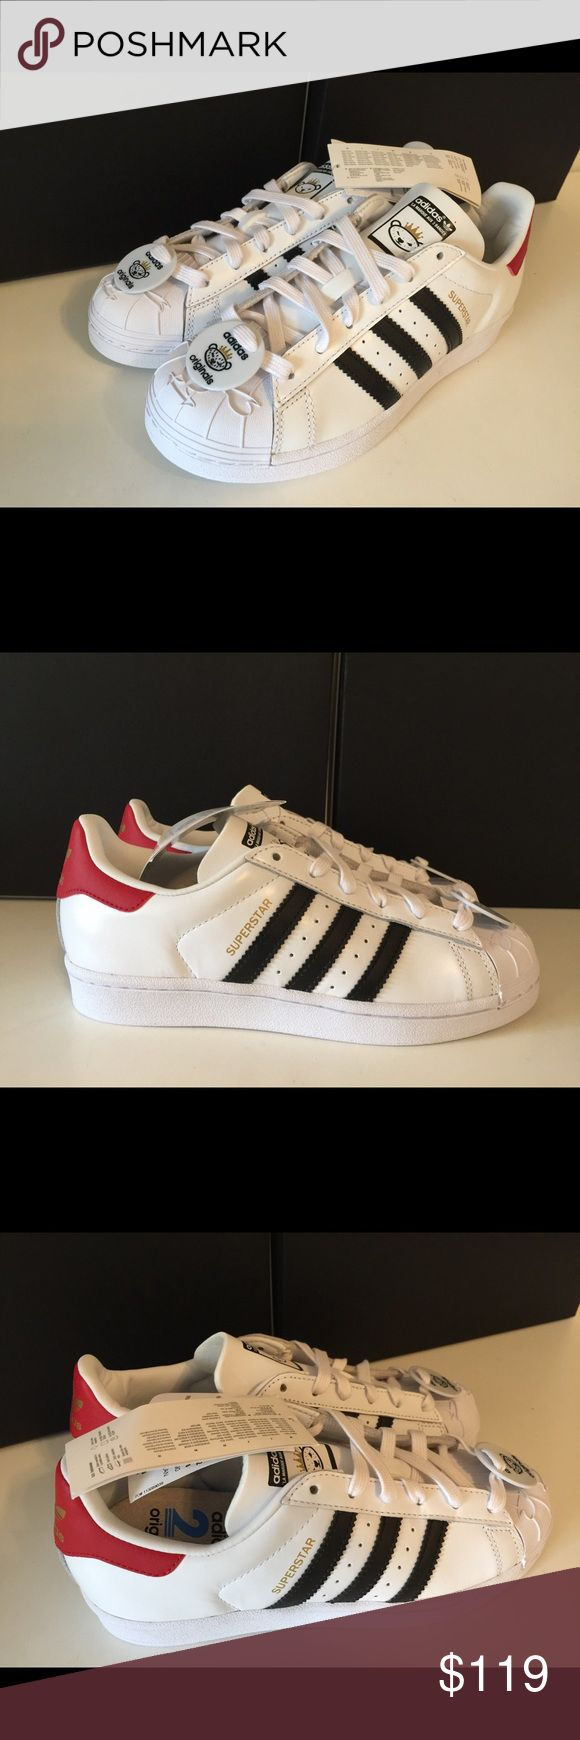 New Adidas Superstar with Nigo Bear Tag 100% Authentic guaranteed! Does not come with the original box. Adidas Shoes Sneakers